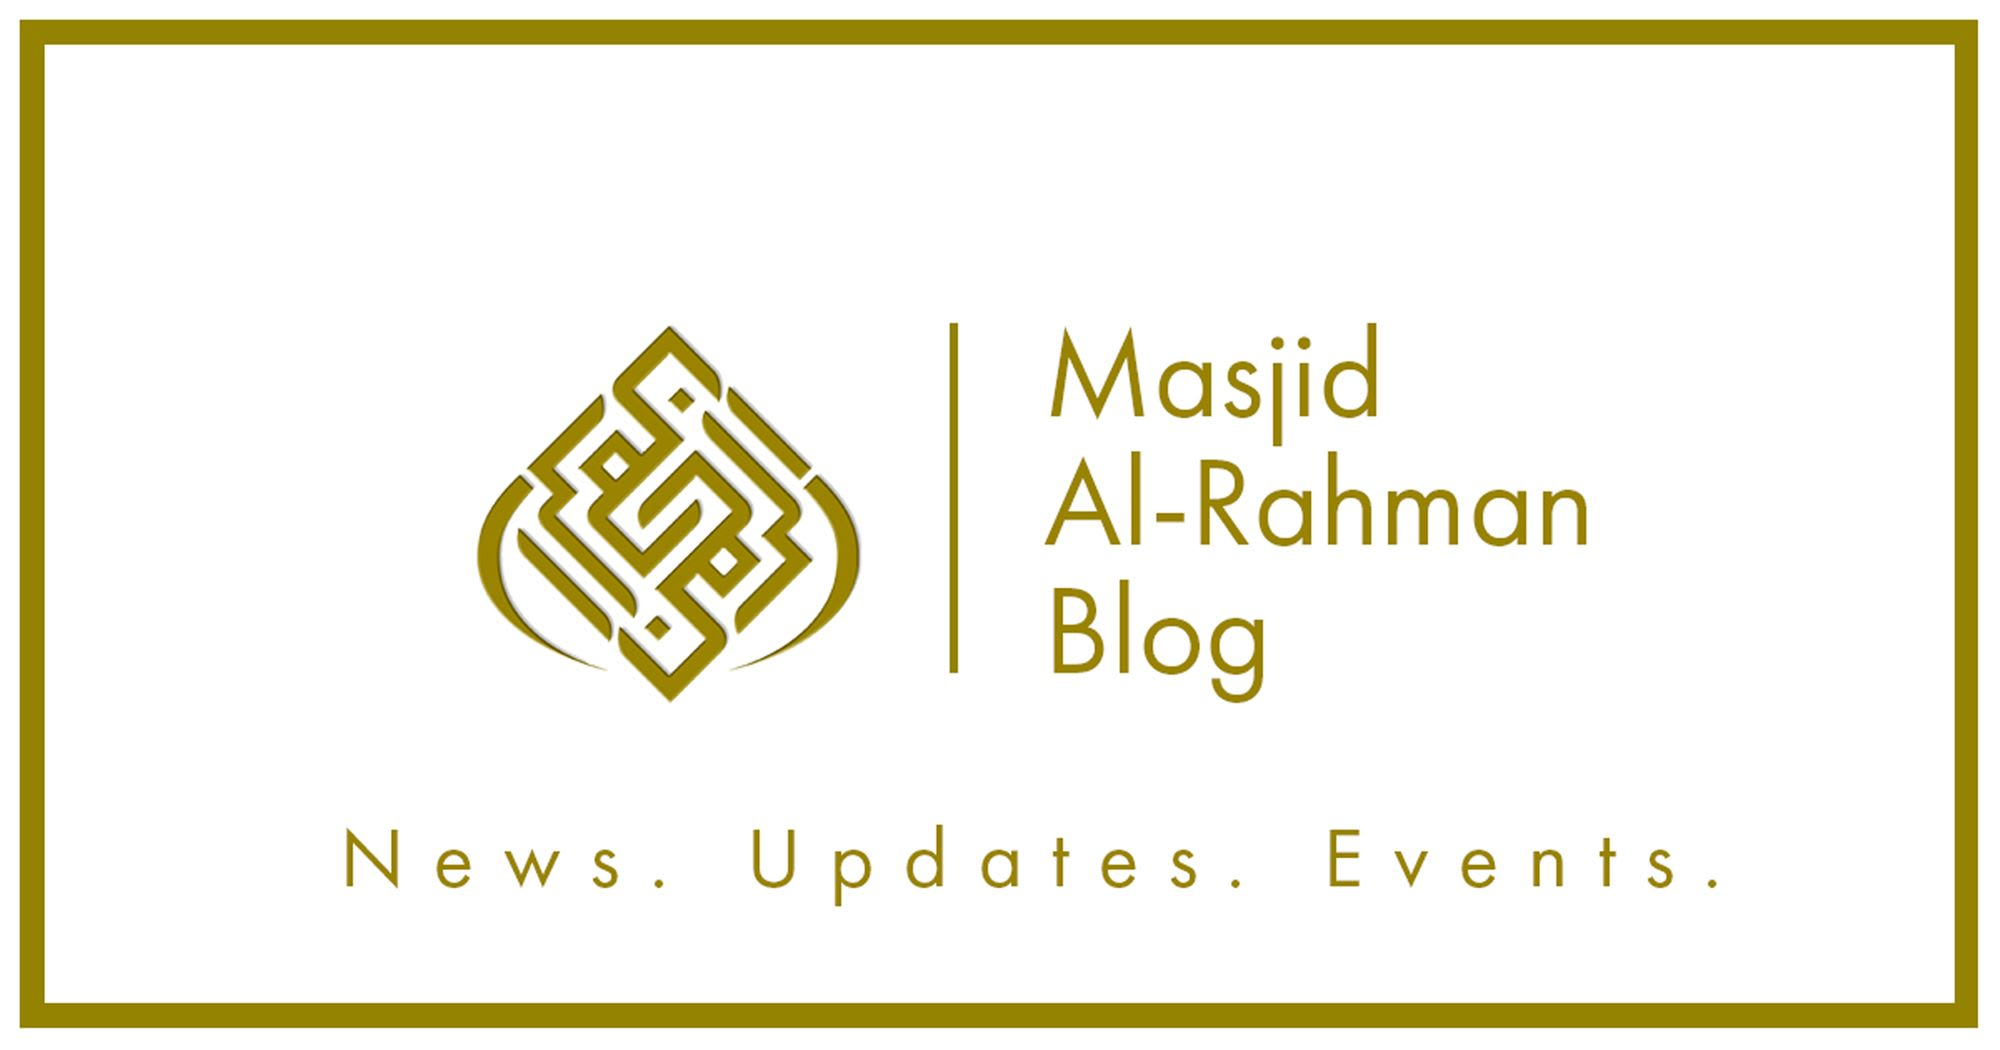 Welcome to Masjid Al-Rahman's Blog